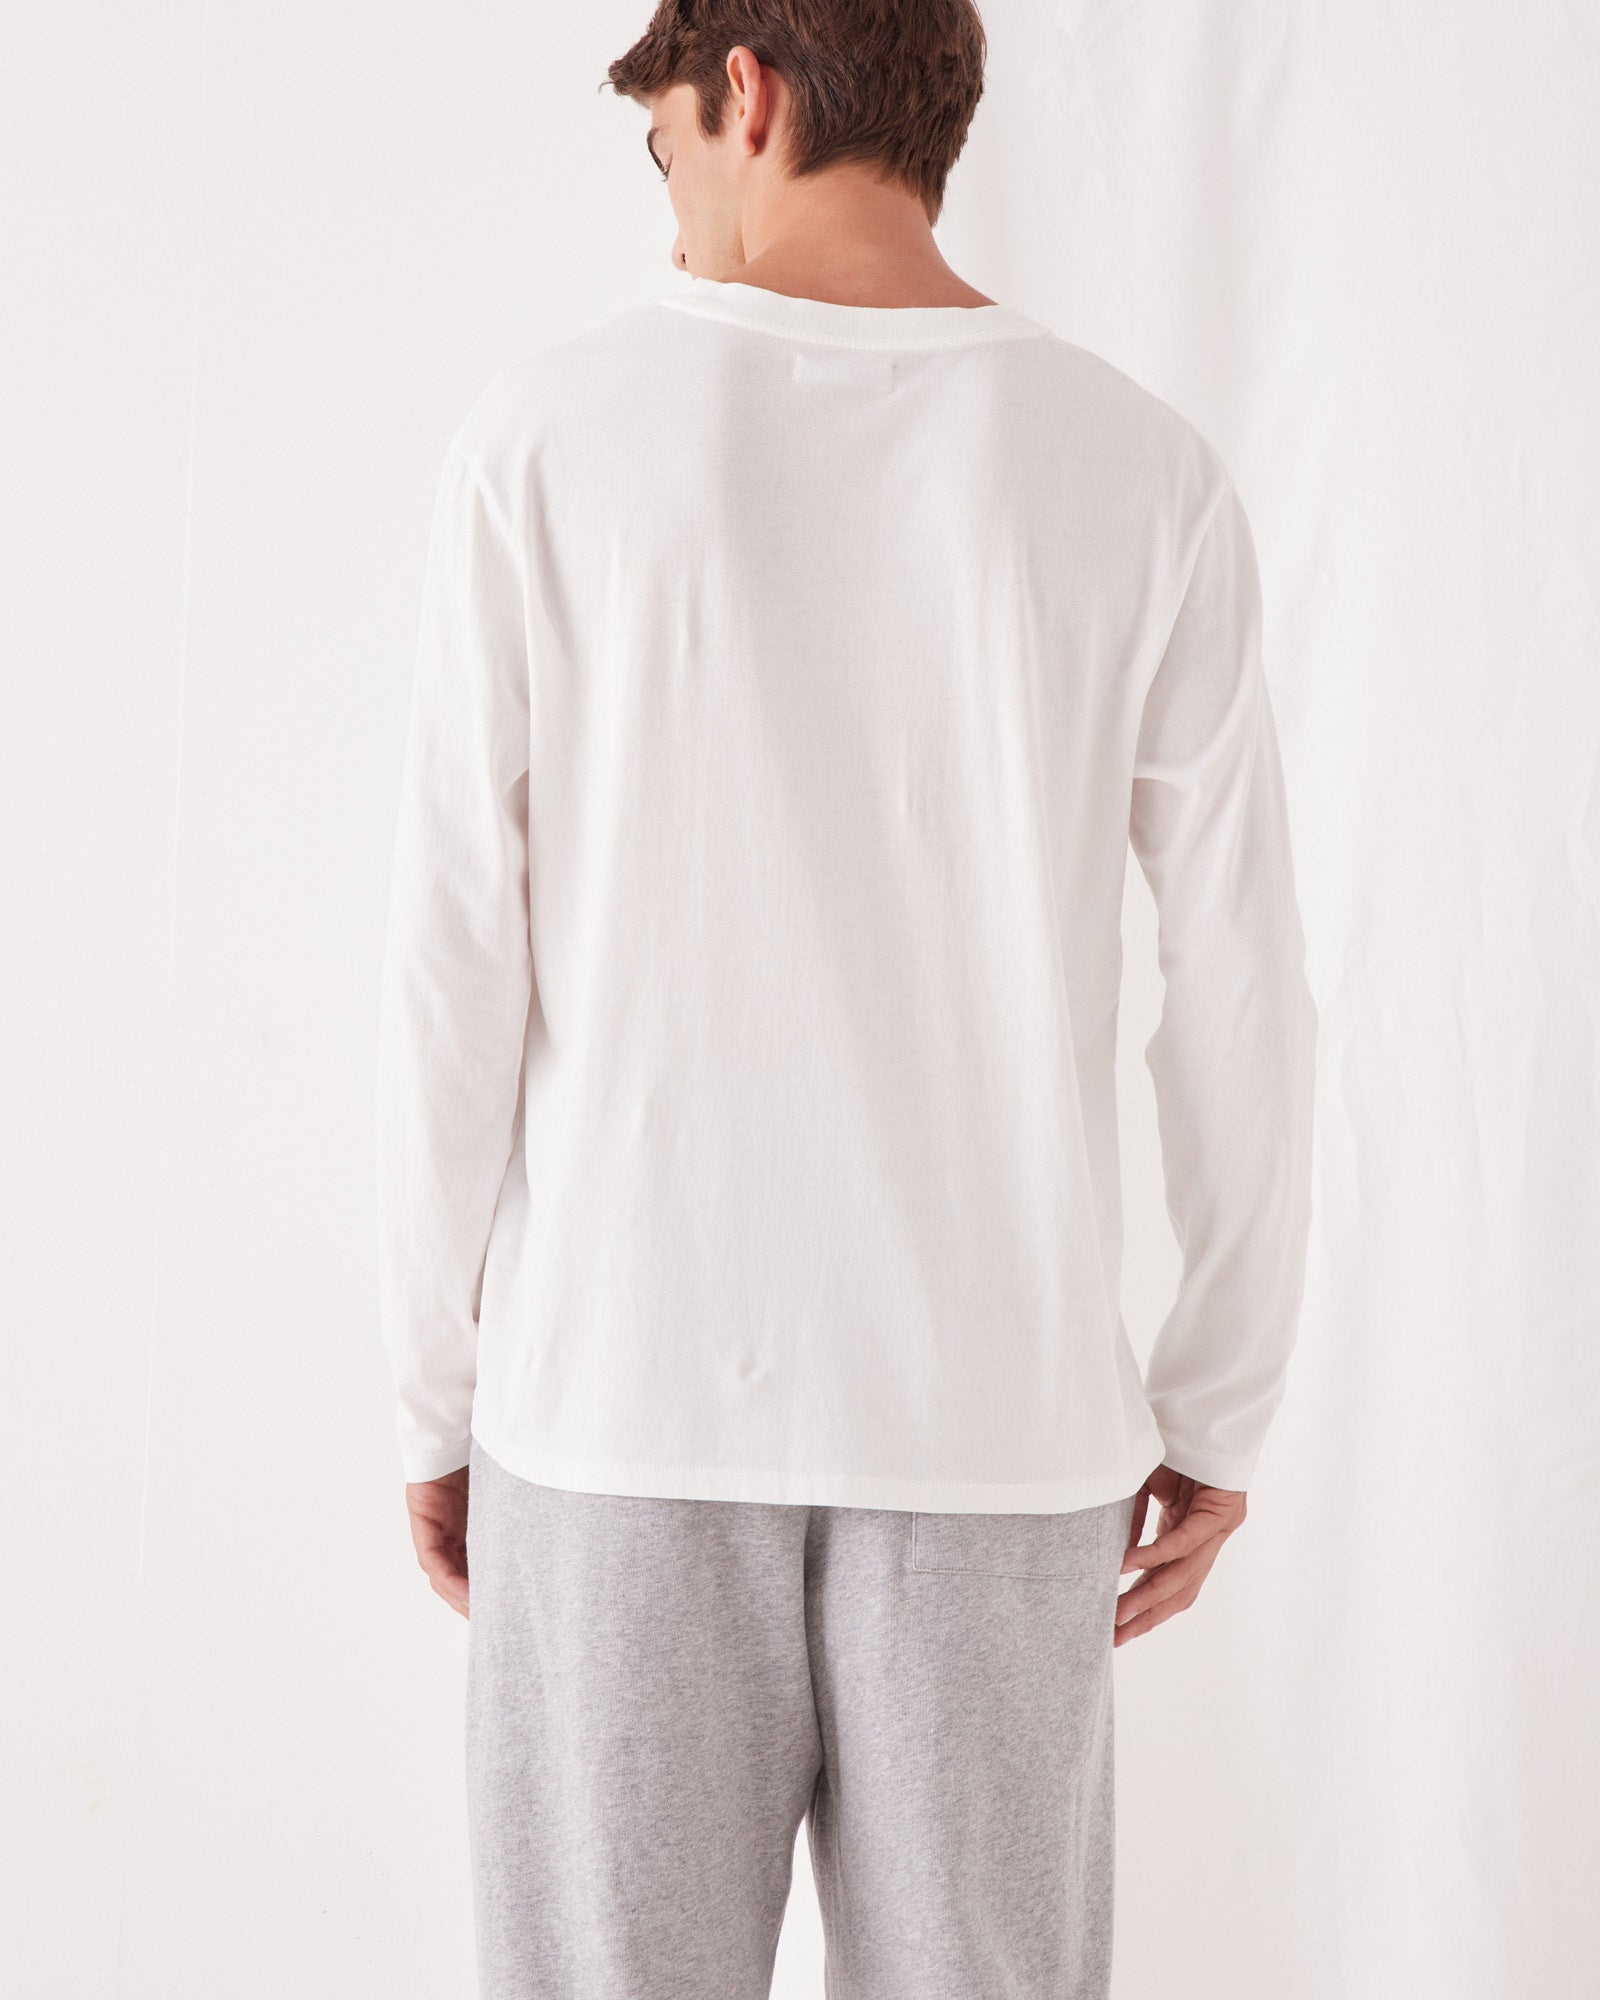 Reuben Long Sleeve Tee Antique White